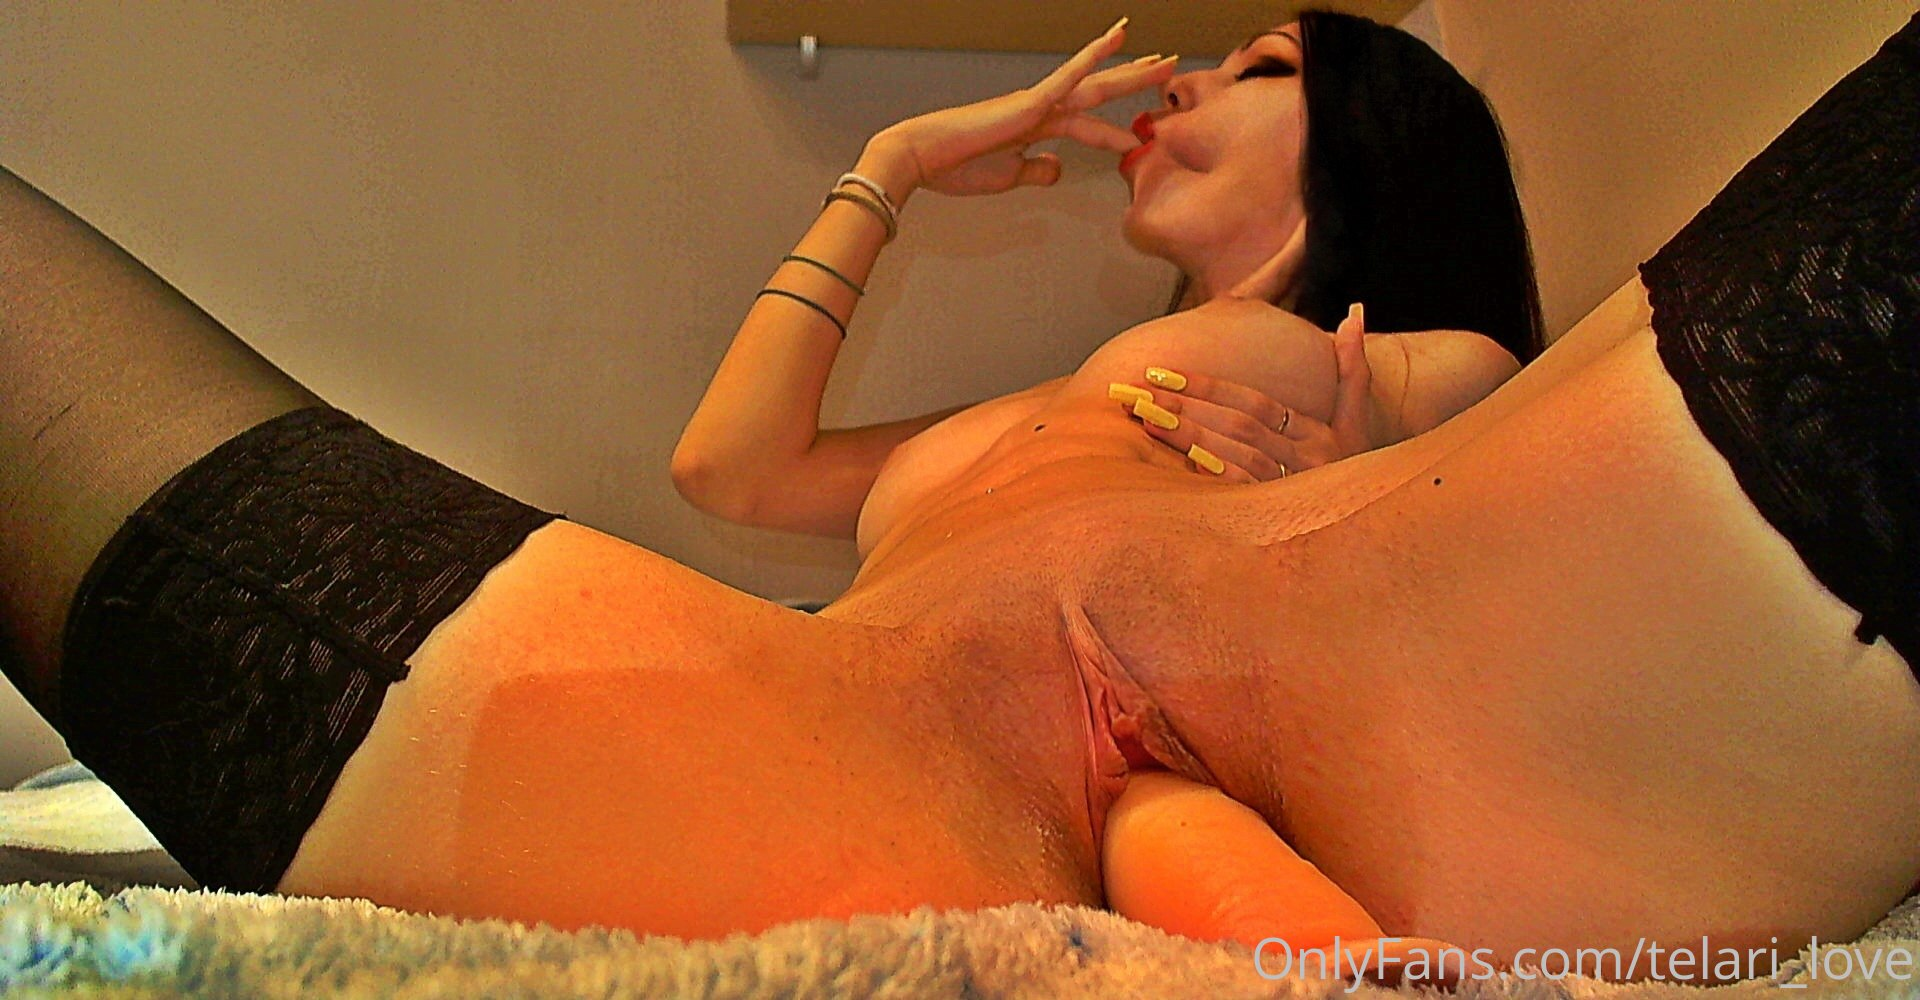 Telari_Love And God Pussies Porn OnlyFans Leaked Nudes 26